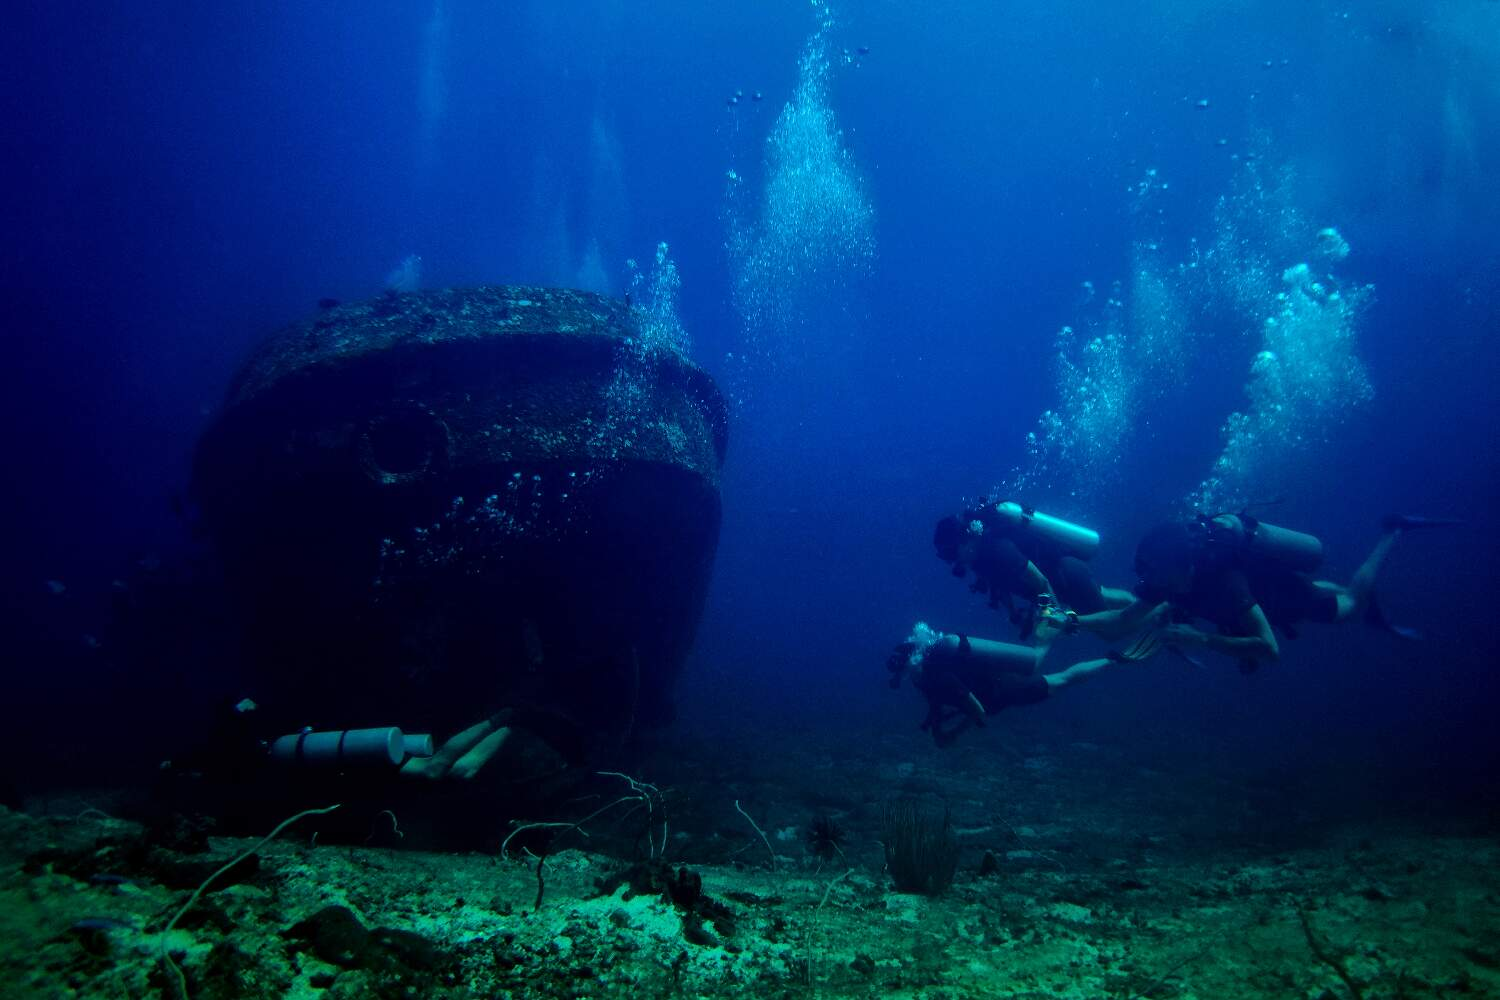 During your course you will learn safety considerations for navigation and exploring ship wrecks